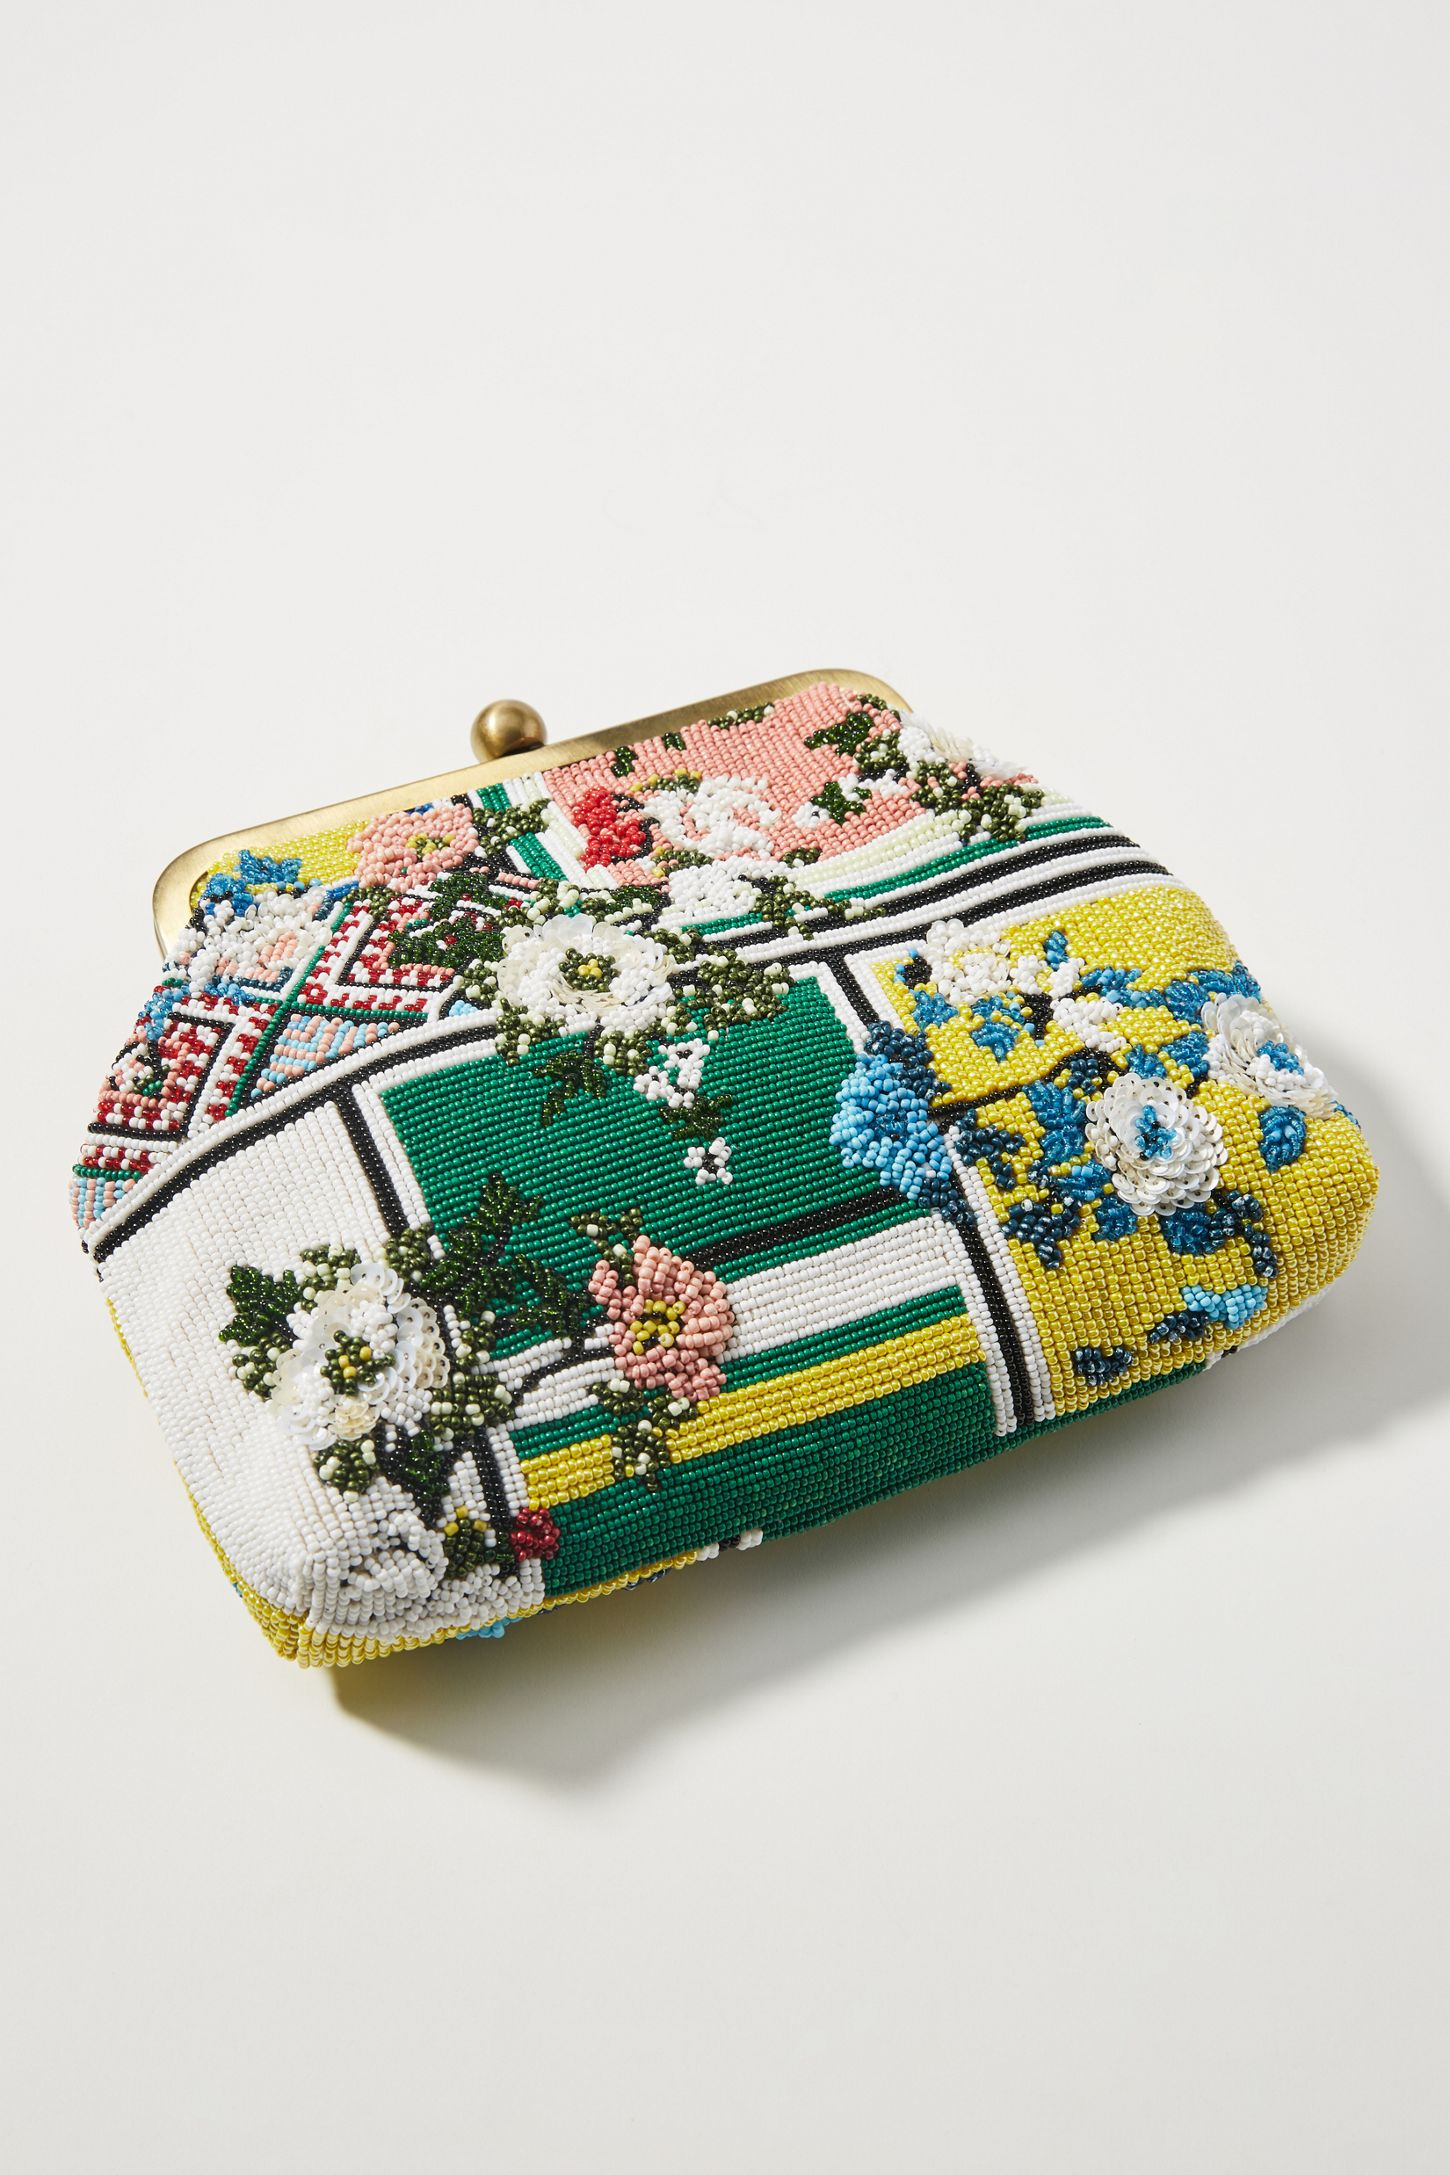 353cfe623857 Floral Patchwork Beaded Clutch | Anthropologie